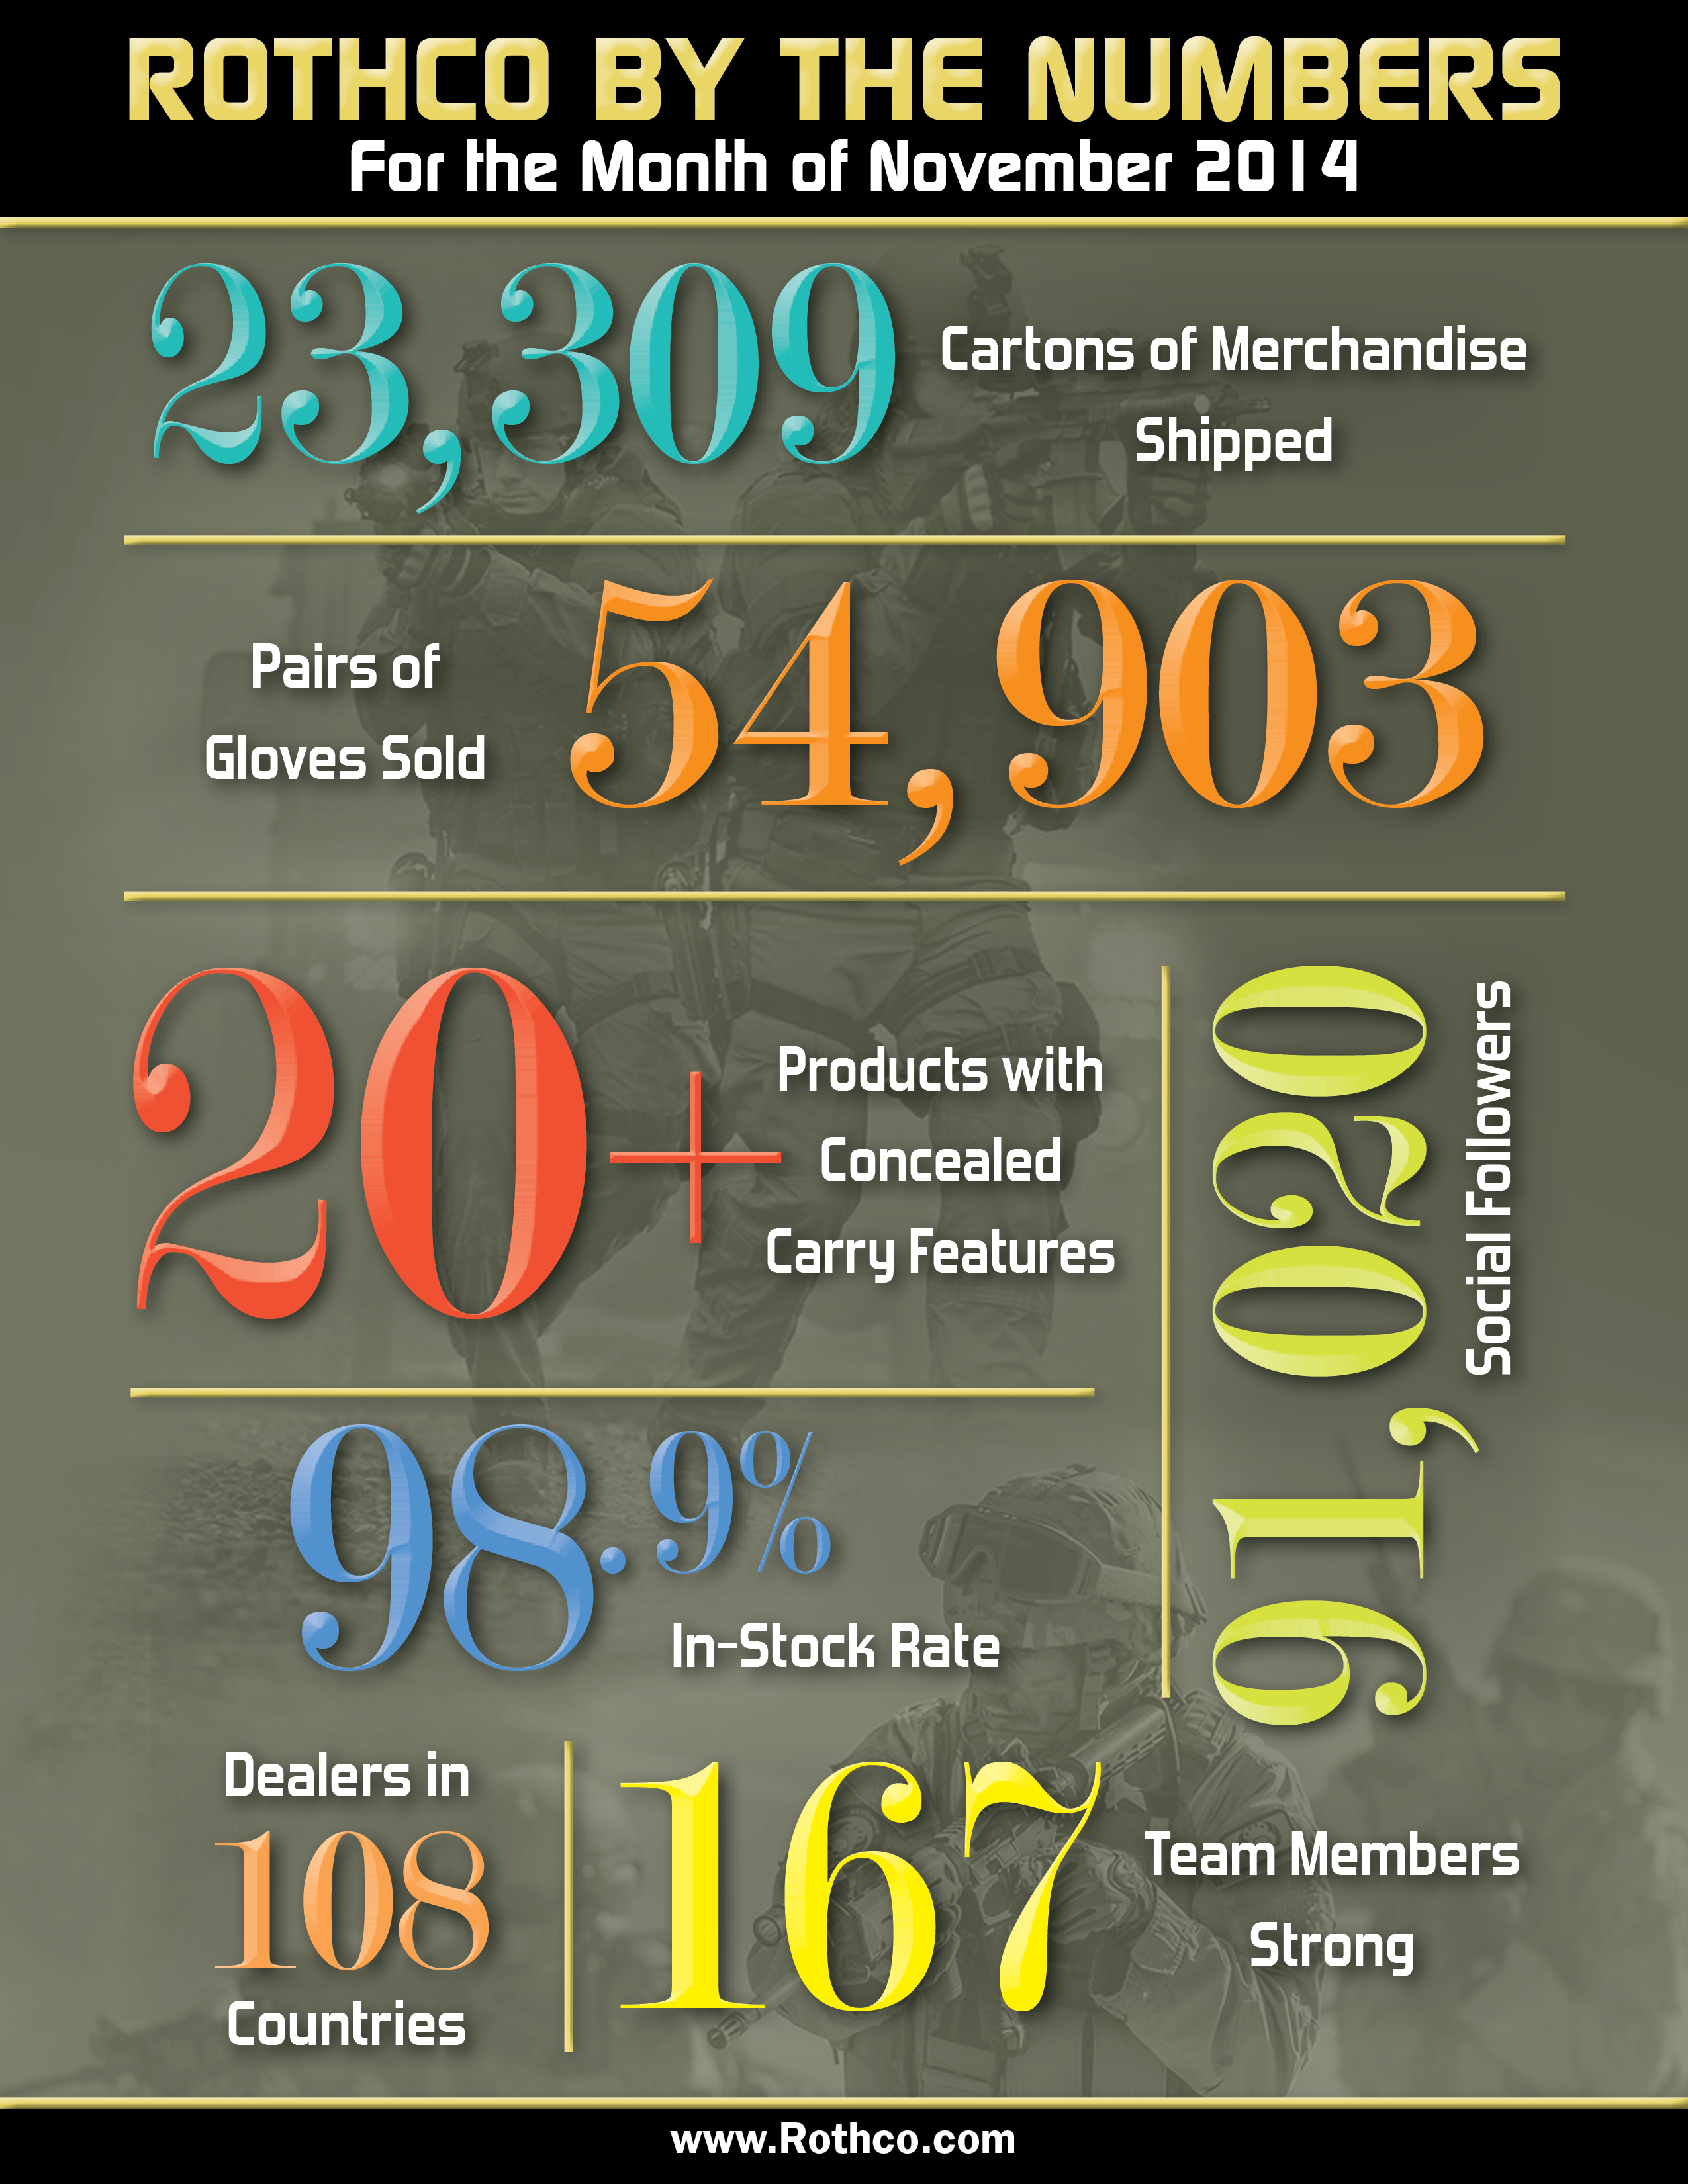 Rothco By The Numbers November 2014